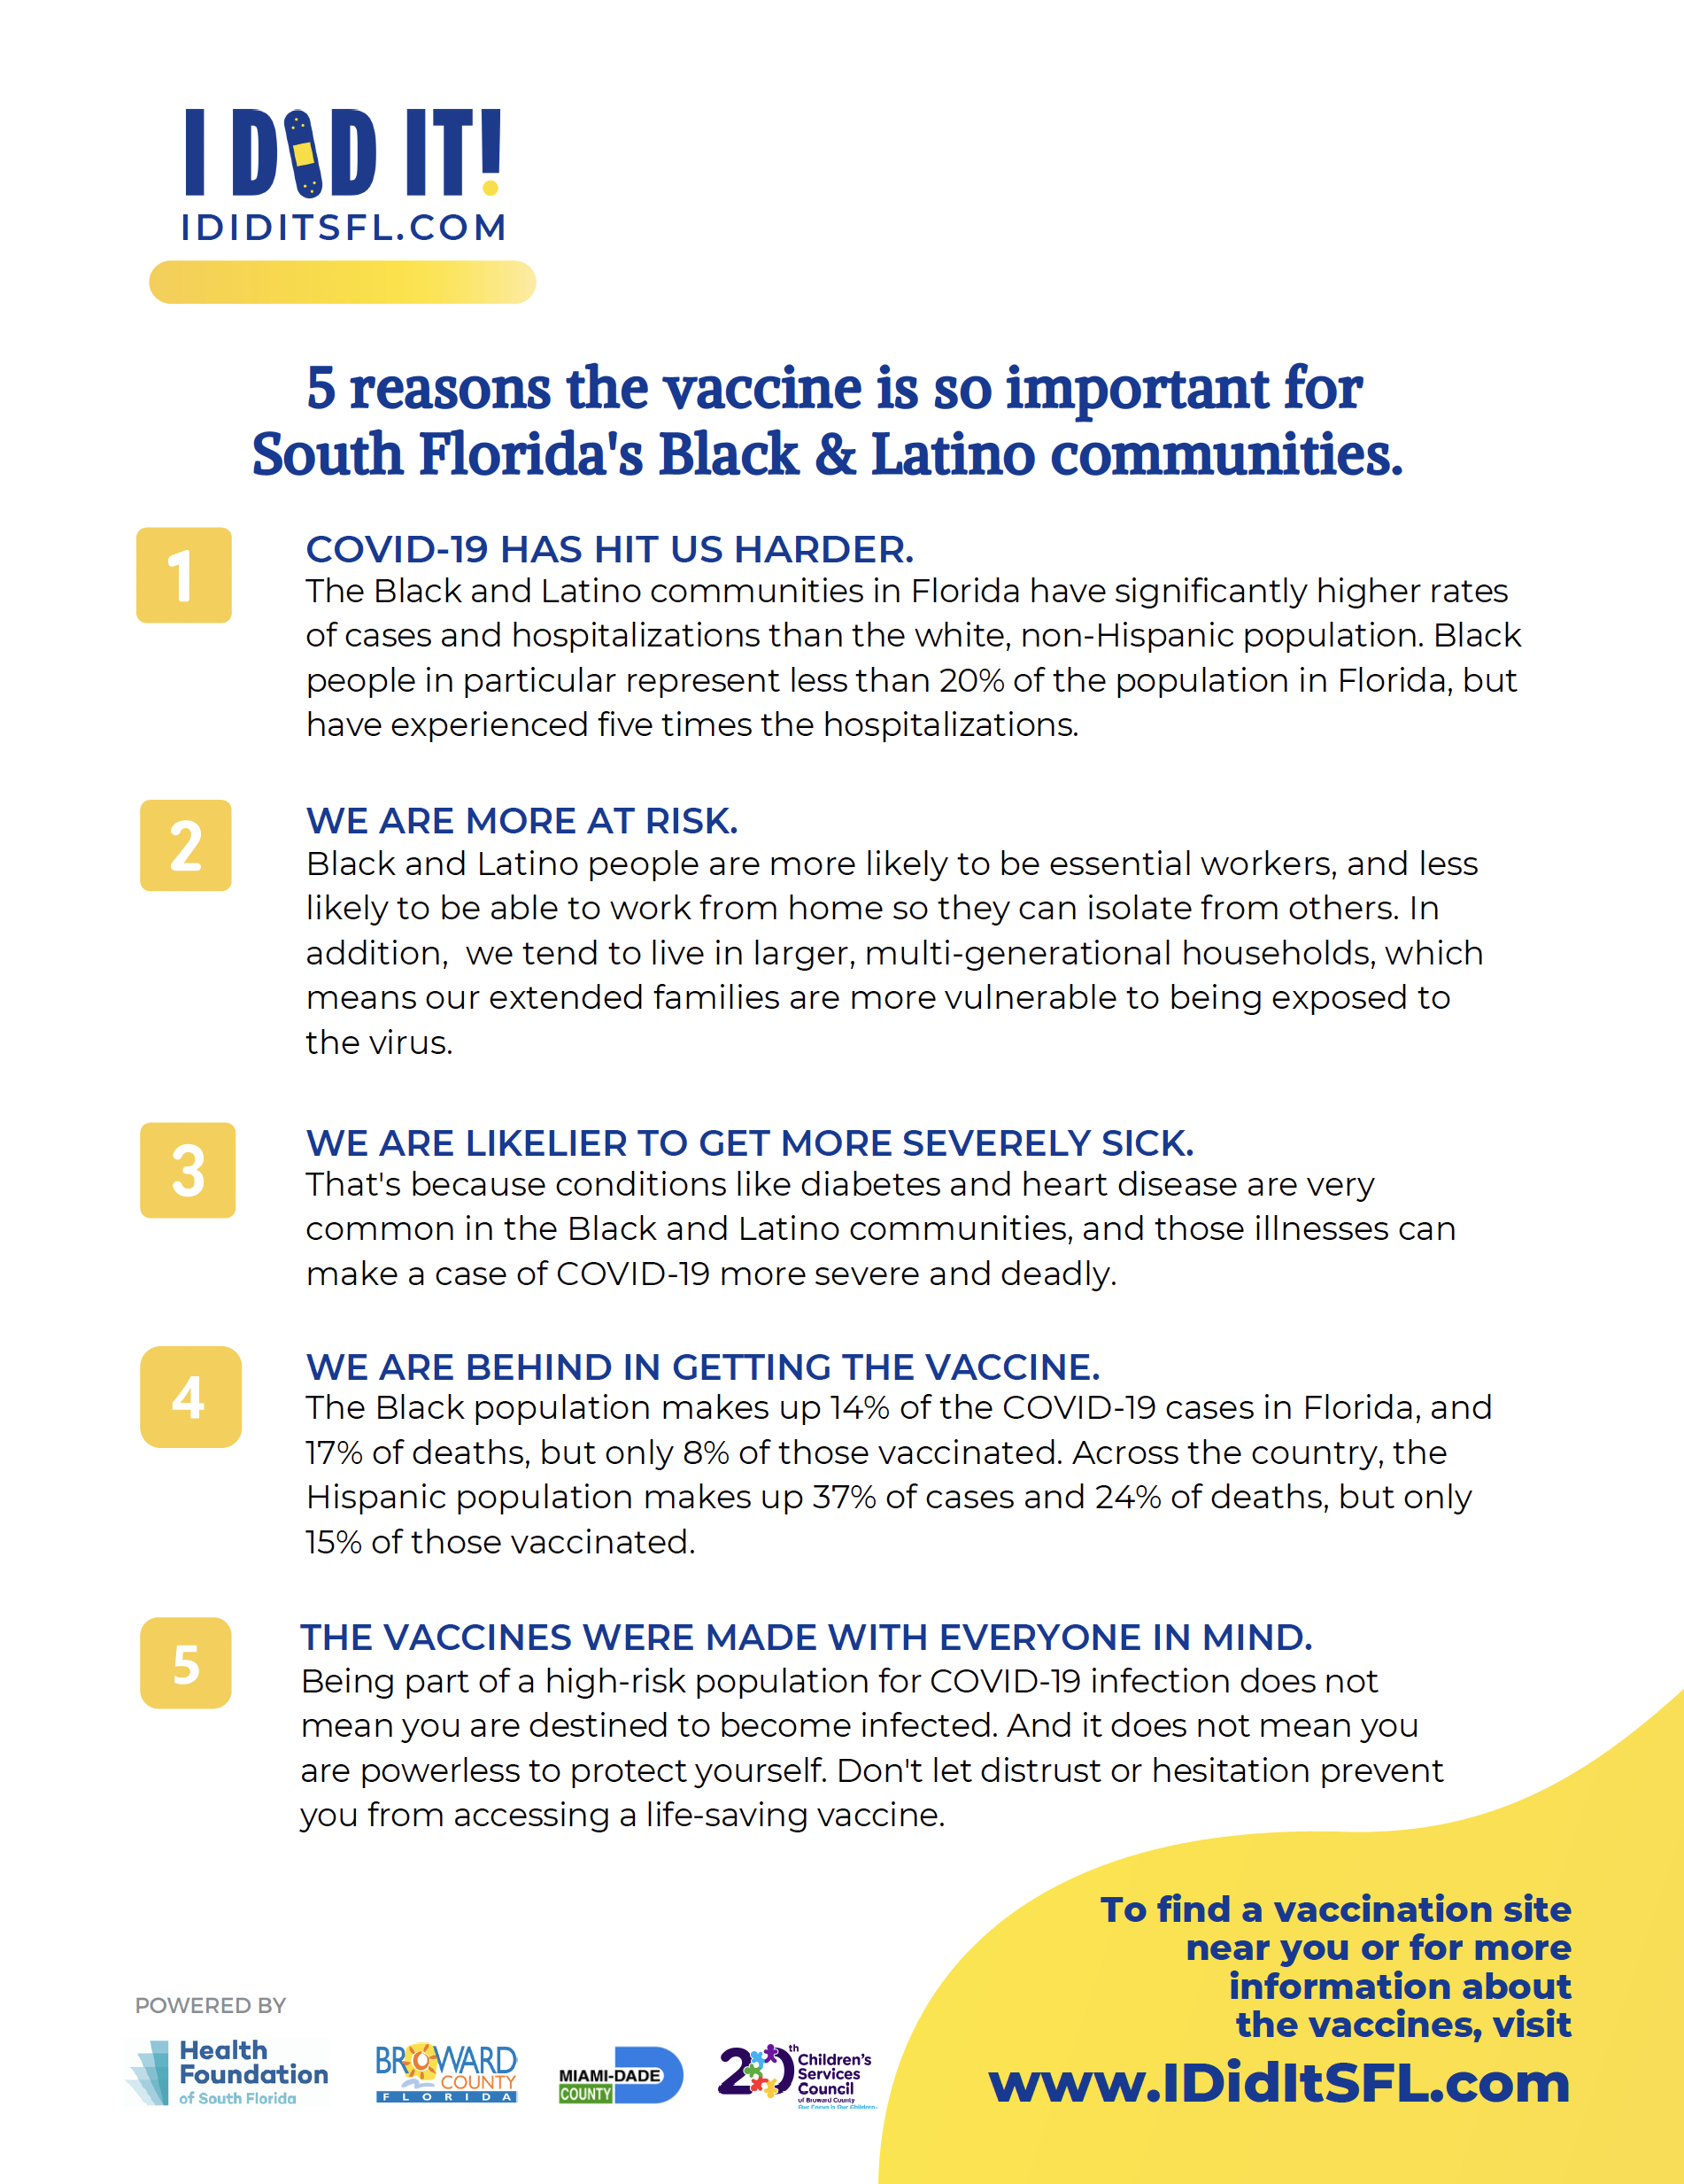 5 reasons the vaccine is important